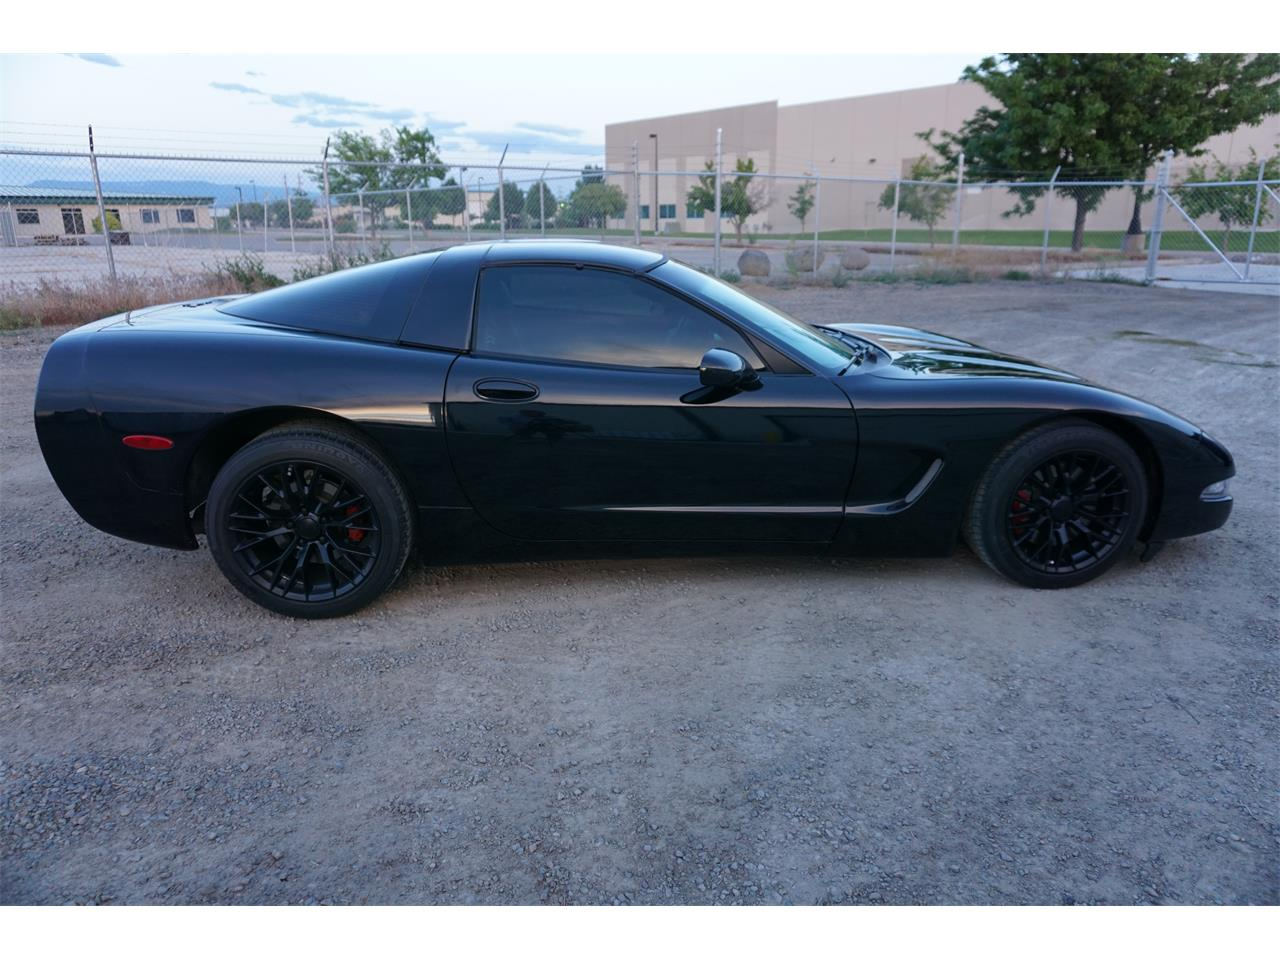 Large Picture of '02 Corvette located in Colorado - $15,000.00 Offered by a Private Seller - Q8JM